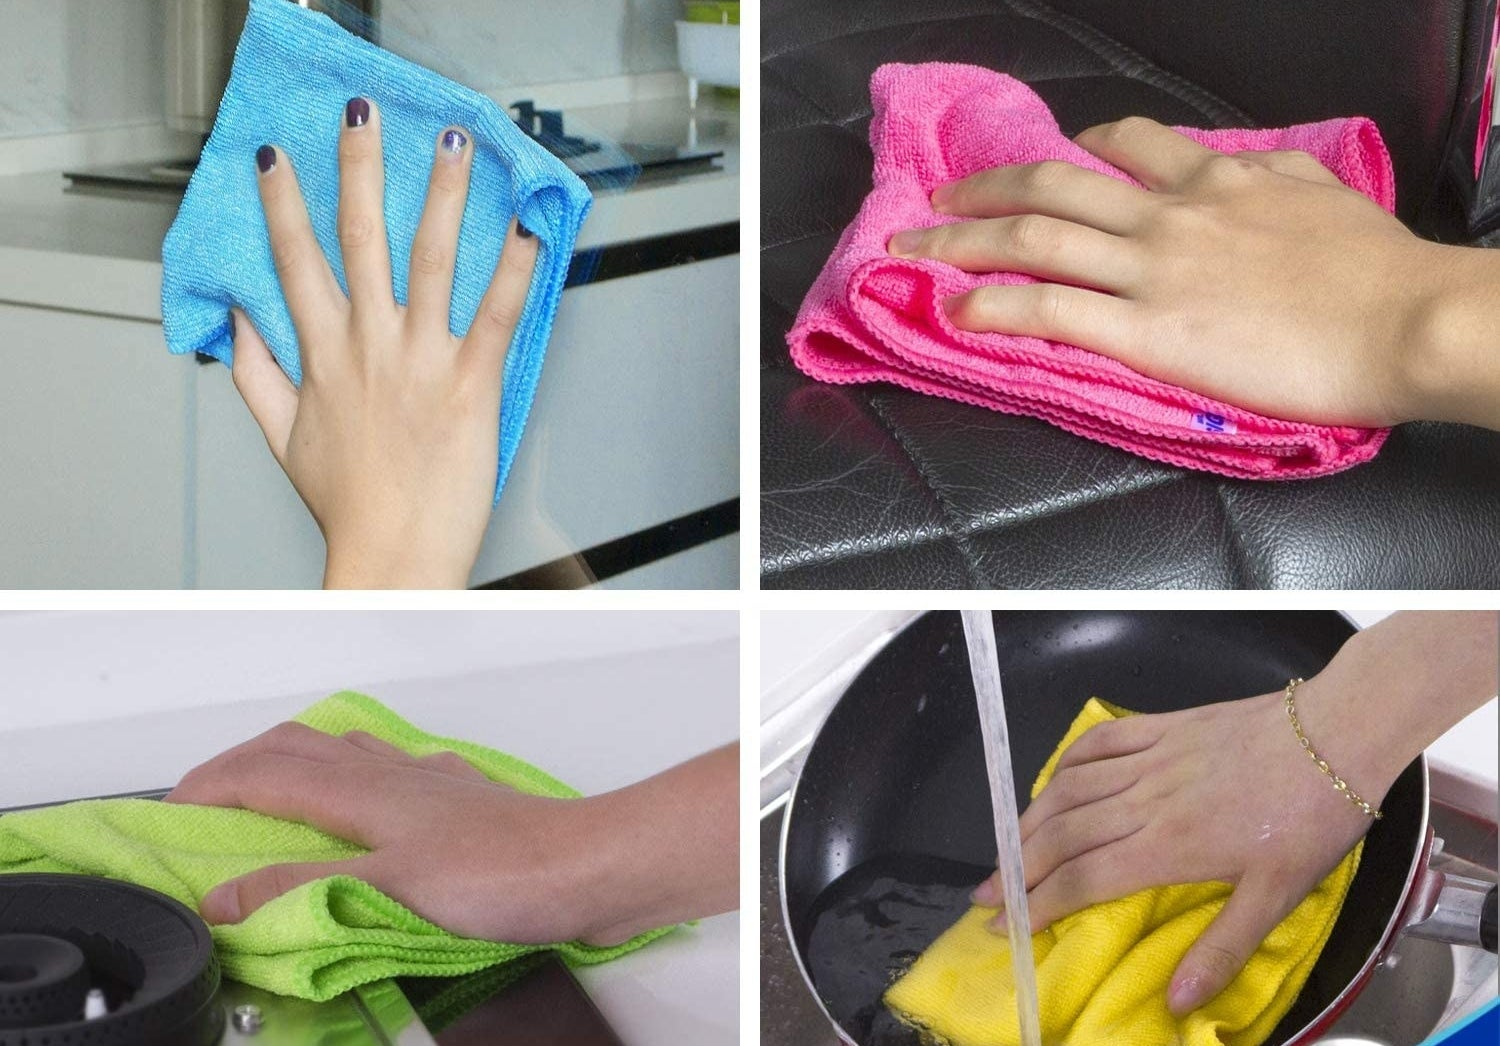 The cloths can be used on glass, leather, stovetops, and dishes